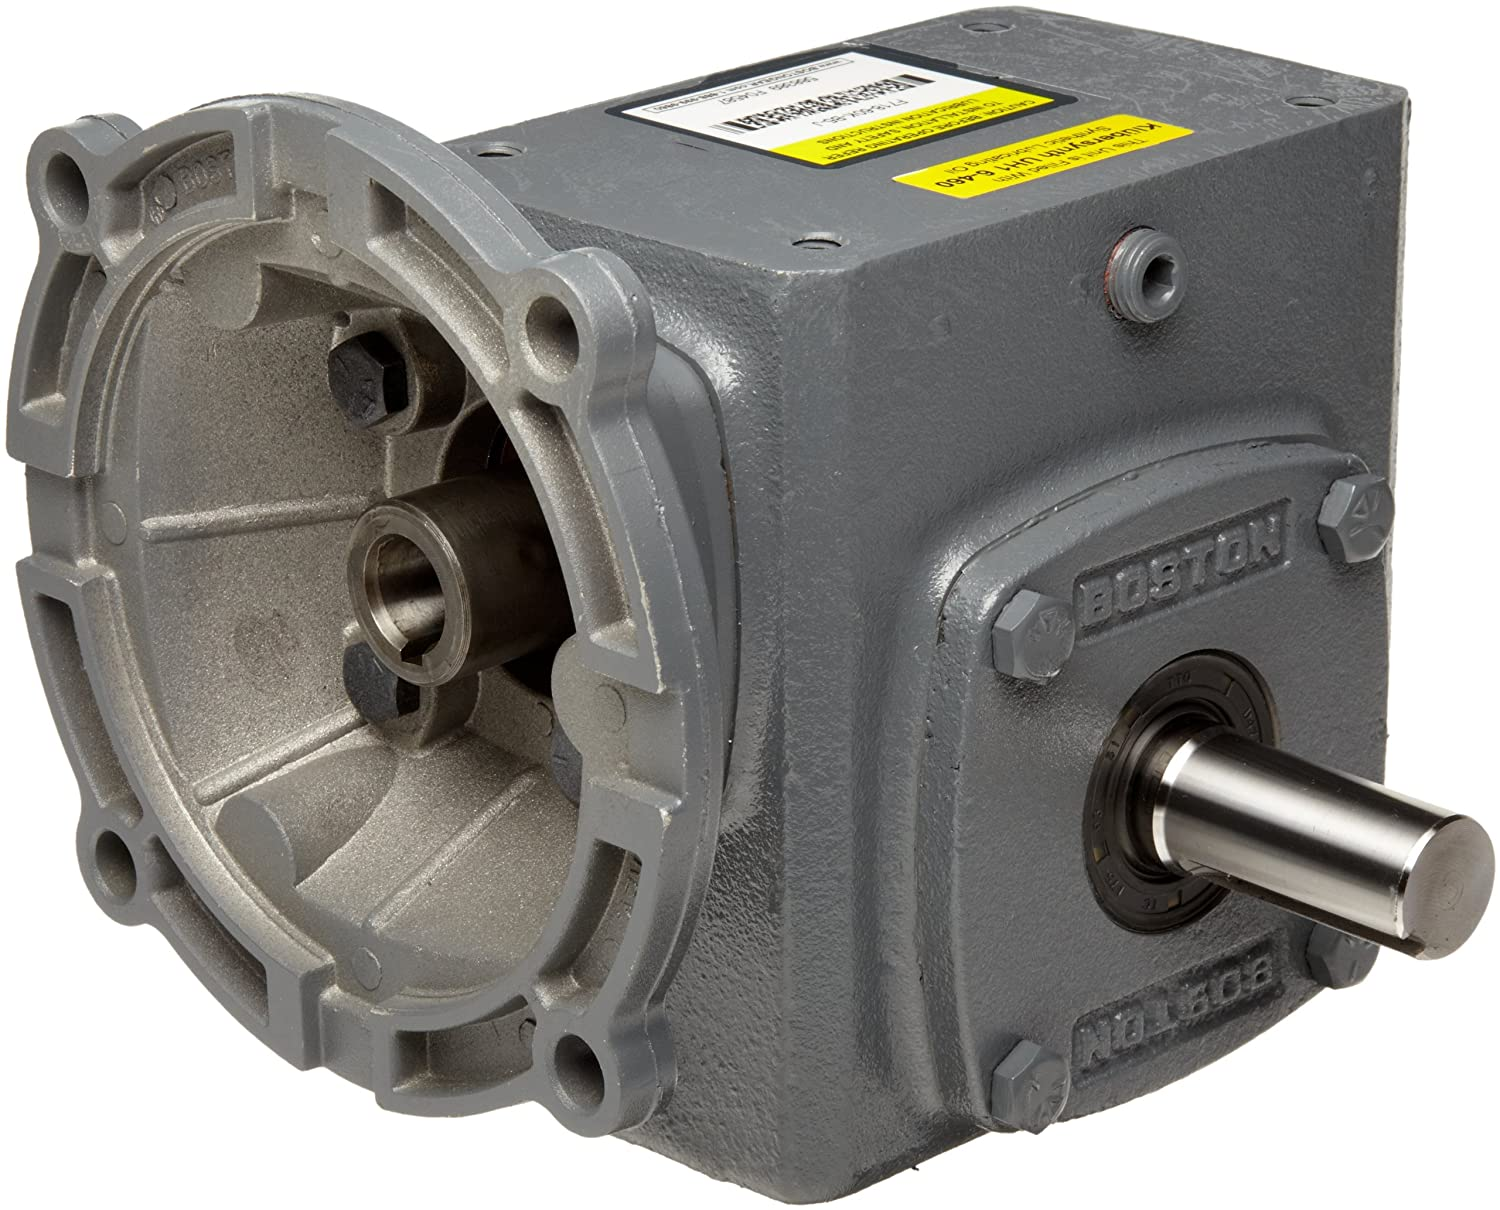 """Boston Gear F71840KB5J Right Angle Gearbox, NEMA 56C Flange Input, Left Output, 40:1 Ratio, 1.75"""" Center Distance, .57 HP and 609 in-lbs Output Torque at 1750 RPM"""